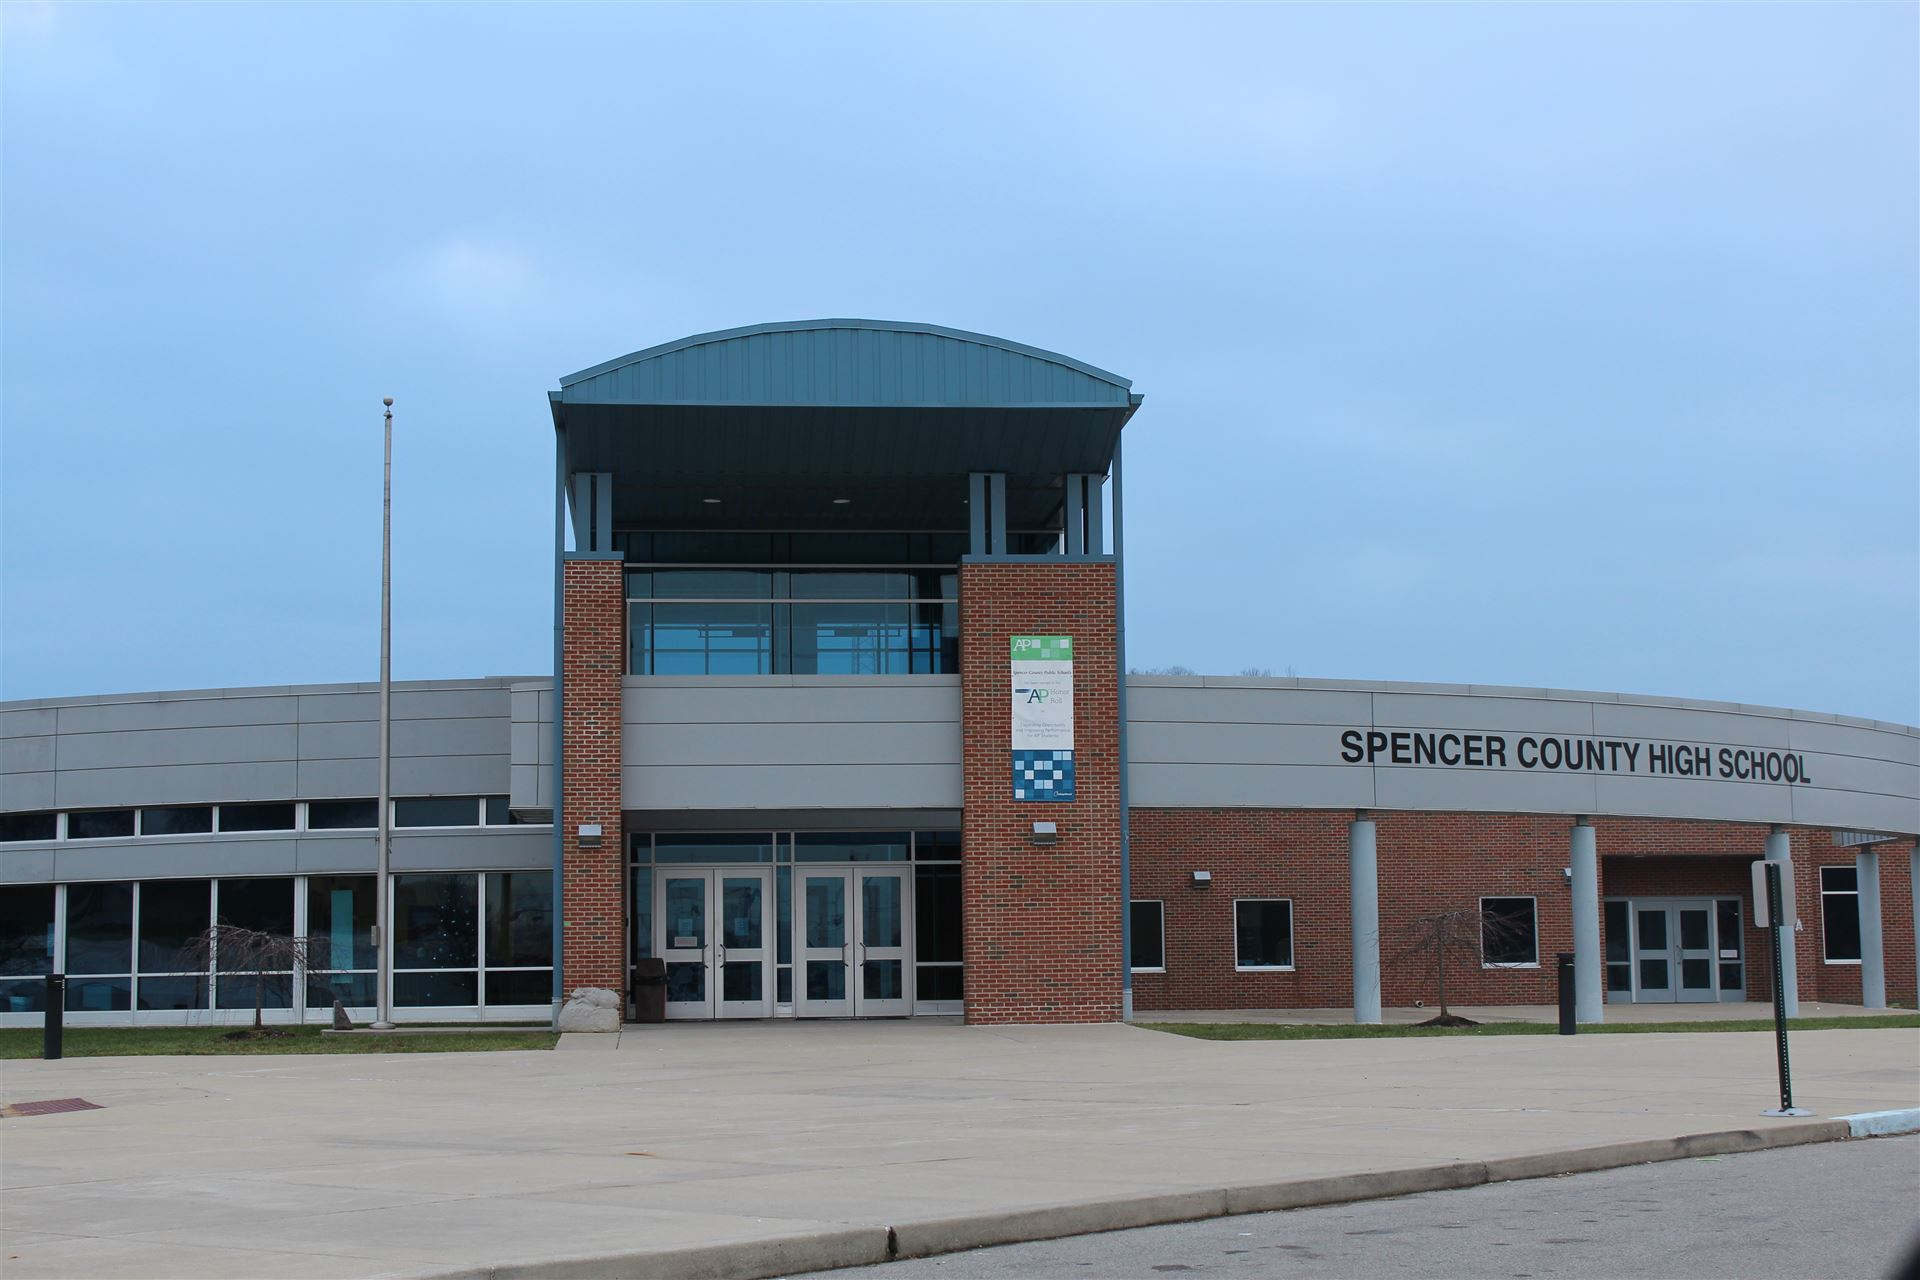 Spencer County High School